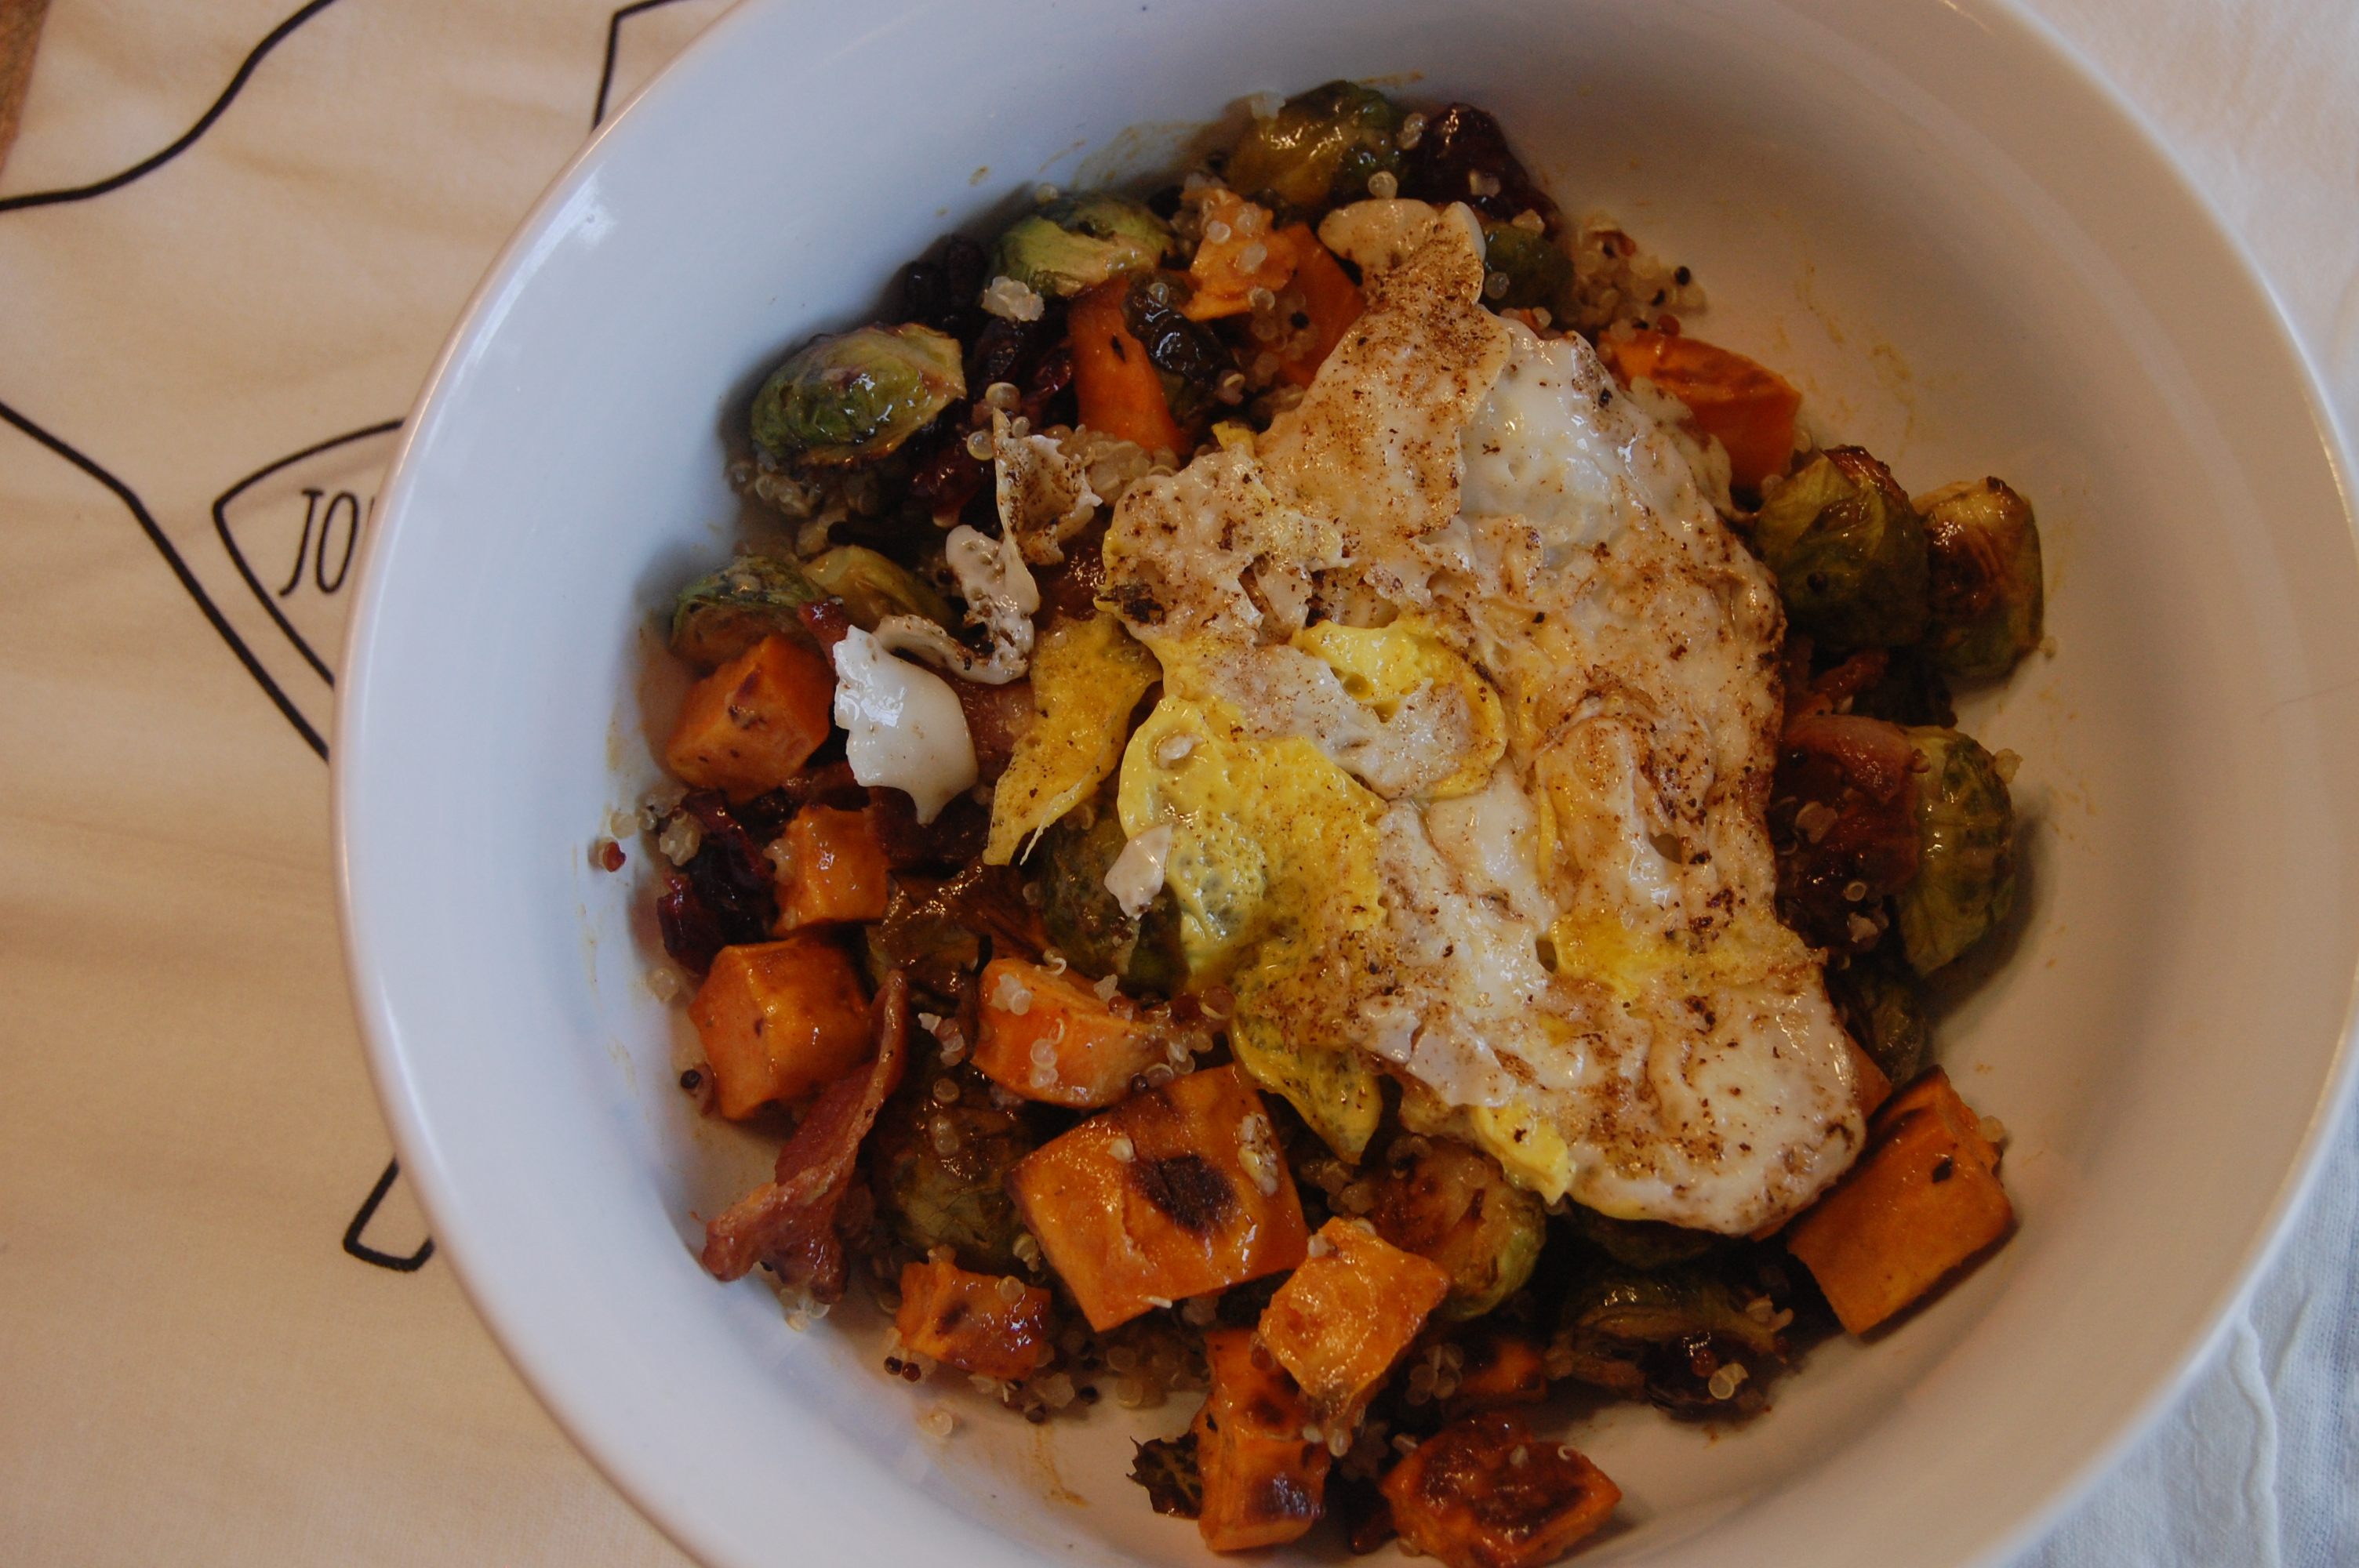 Dijon Maple Roasted Brussel Sprout and Sweet Potato Bowl